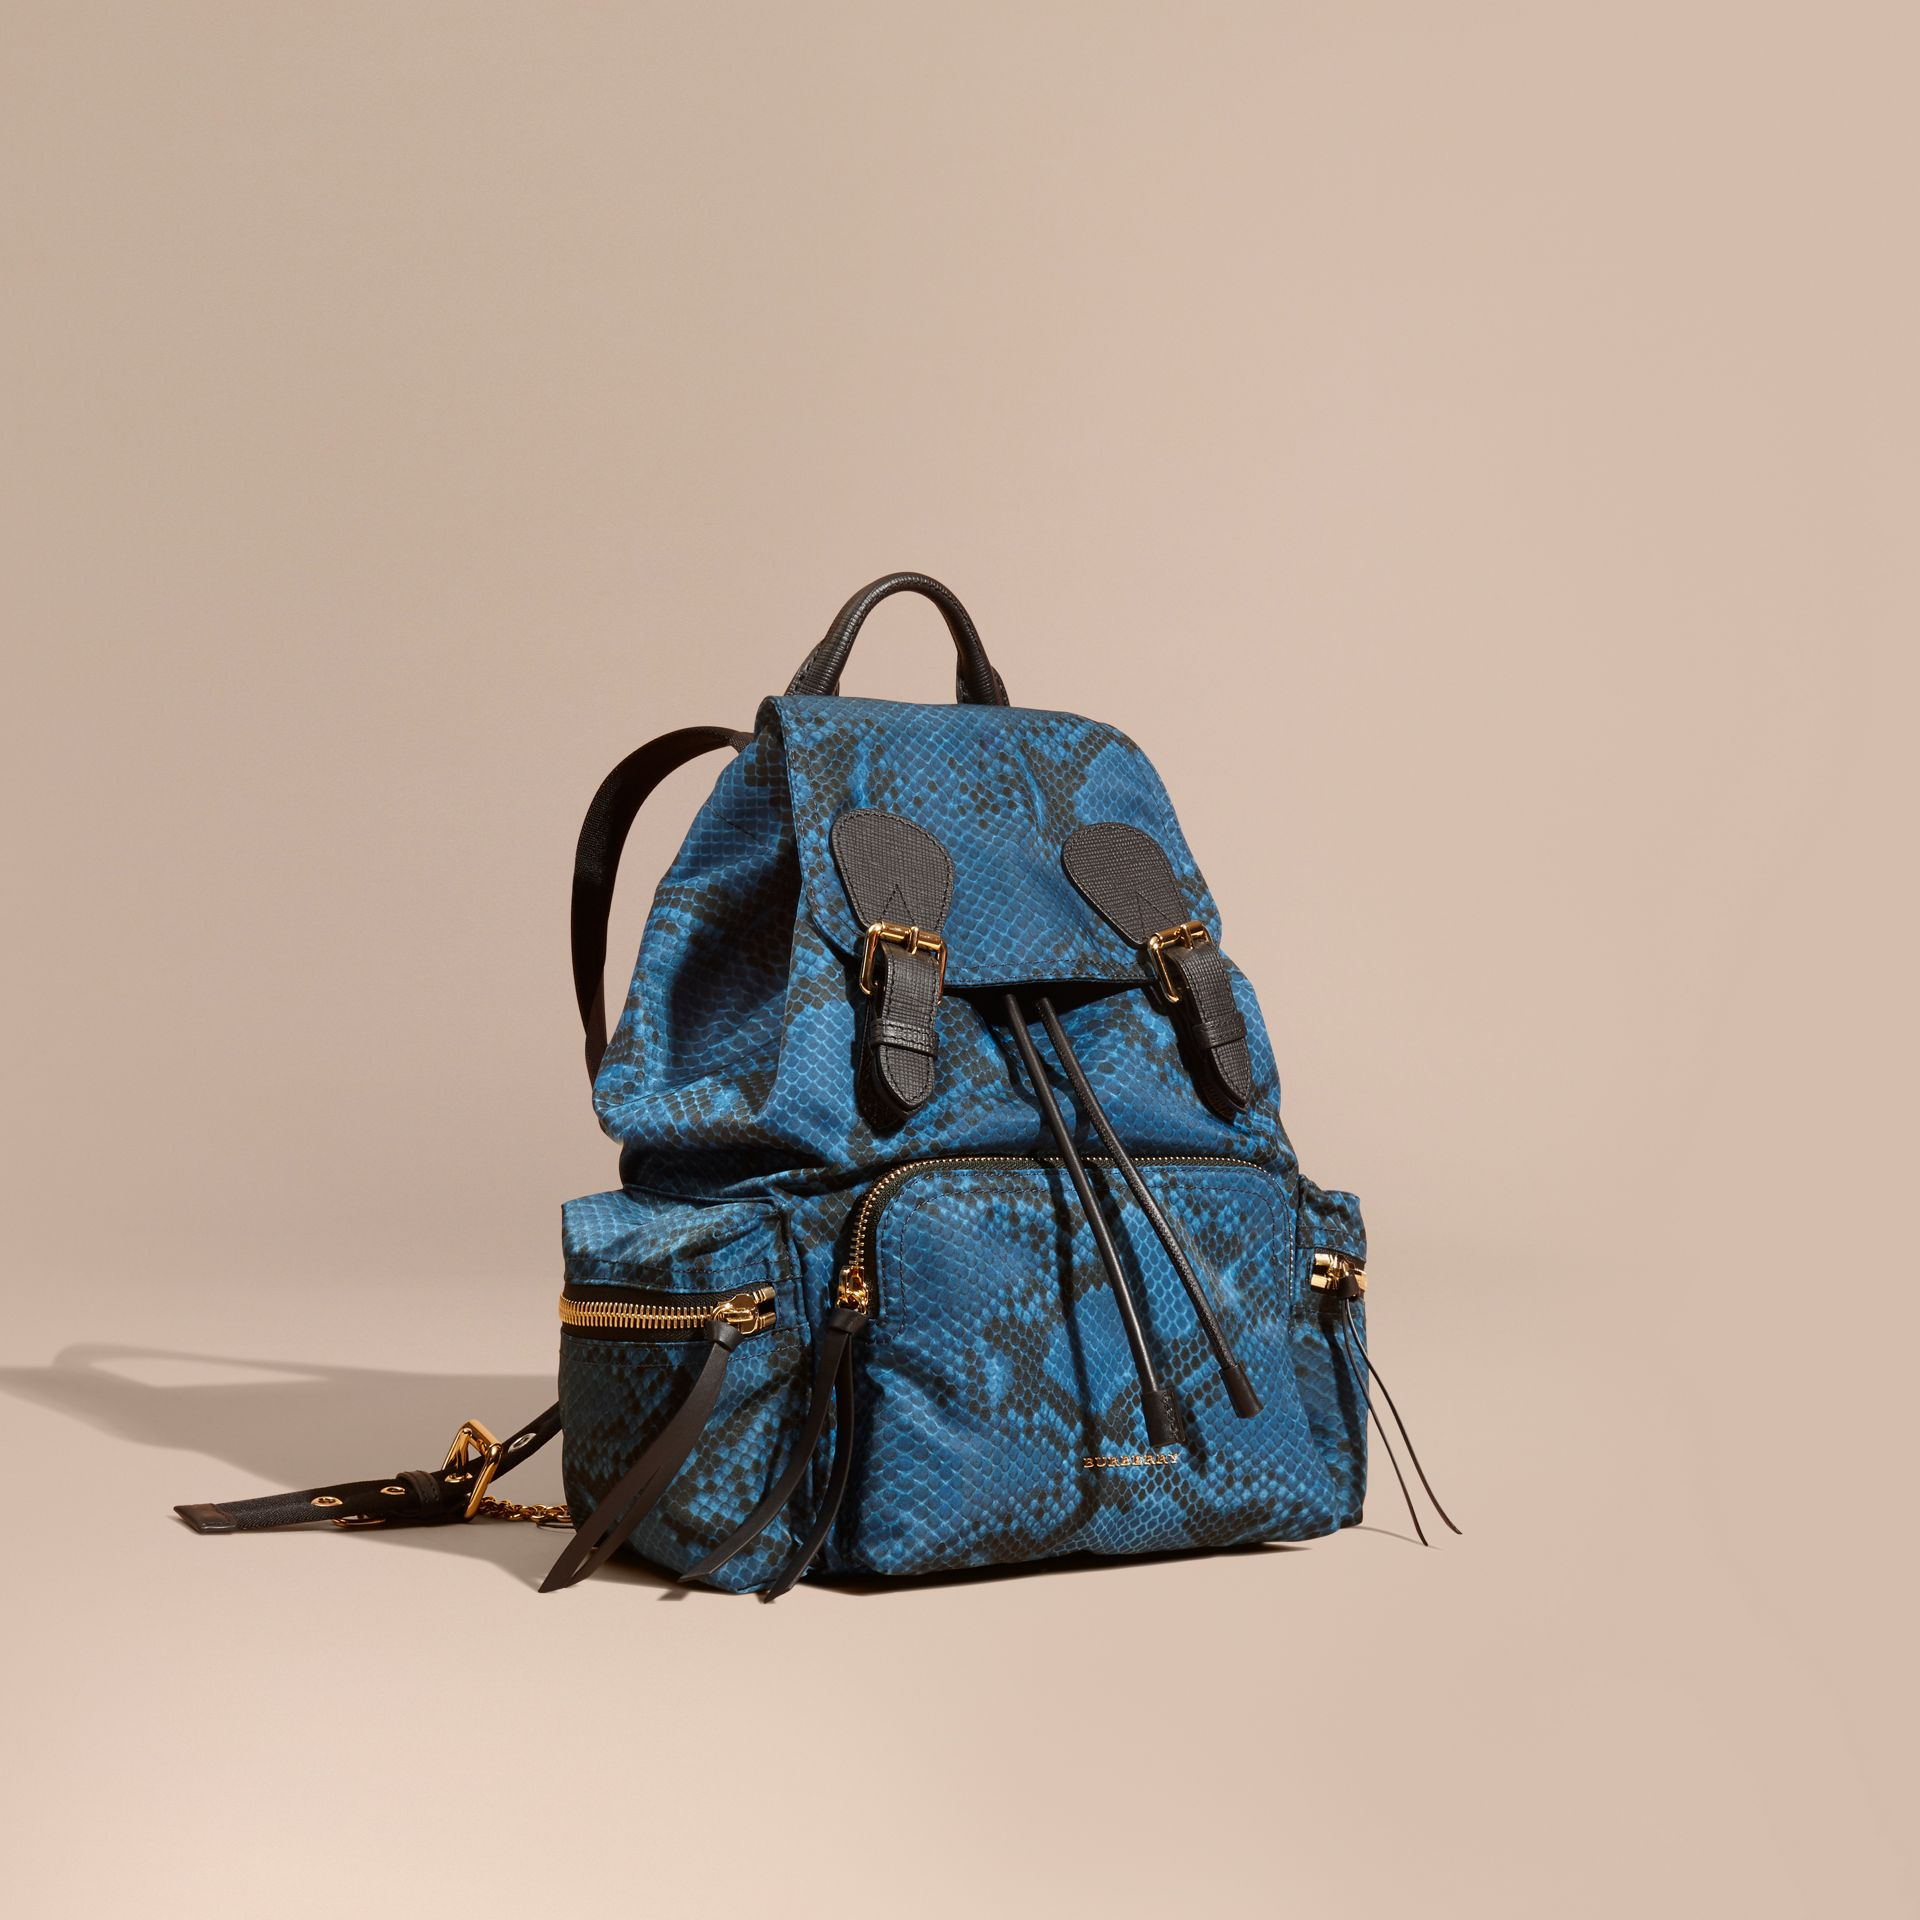 Blue The Medium Rucksack in Python Print Nylon and Leather Blue - gallery image 1